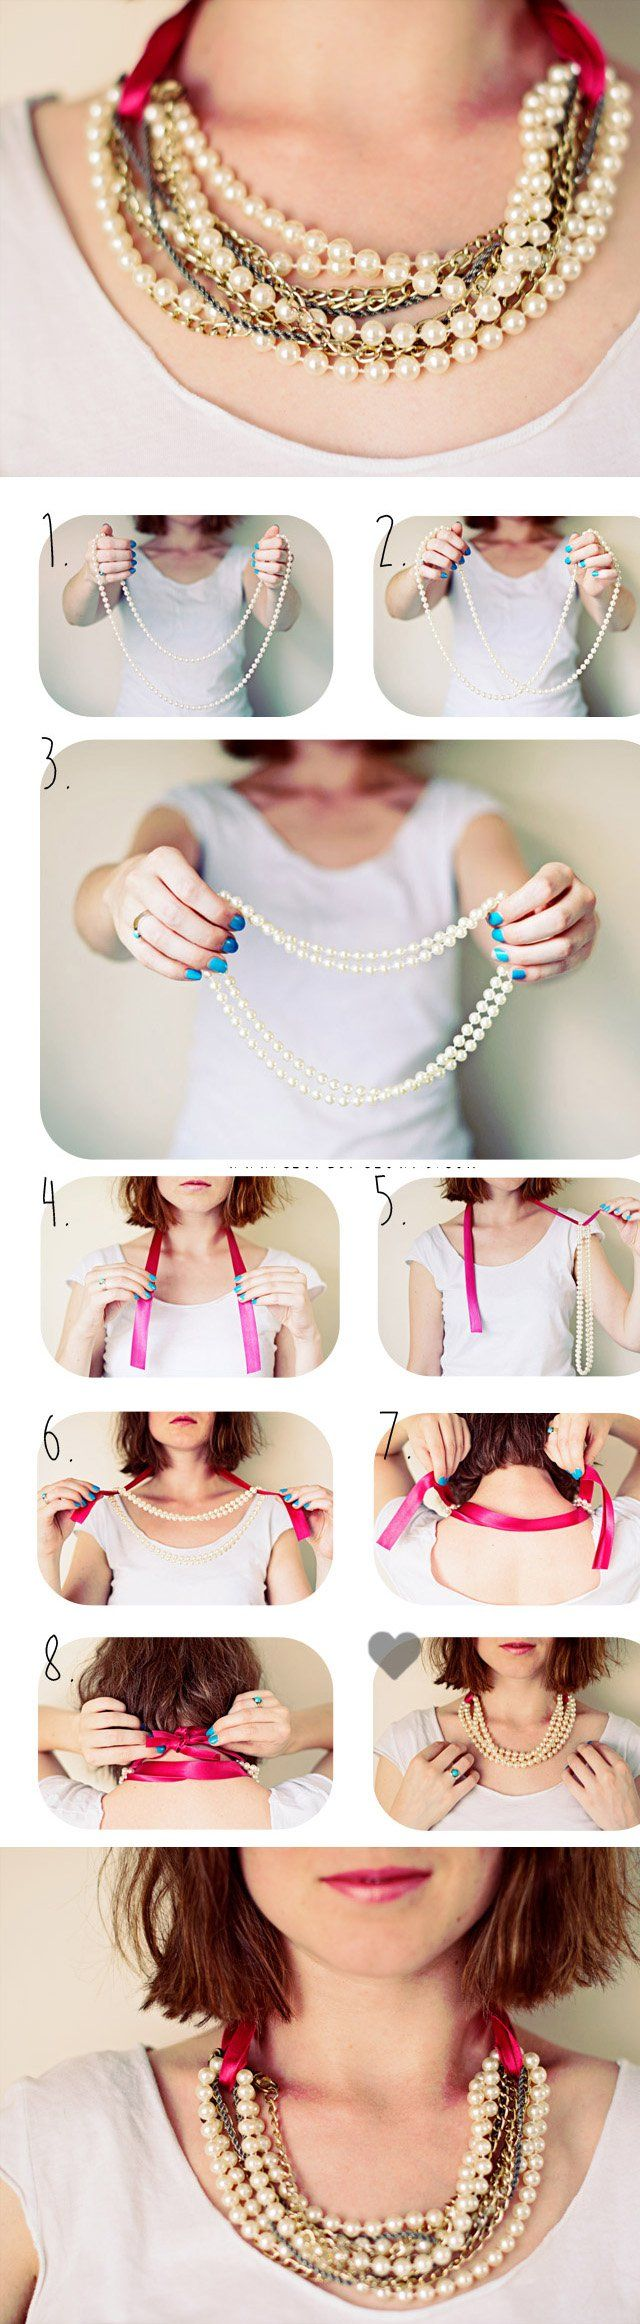 Great idea for combining necklaces, or for changing the length of necklaces. Perfect upcycle idea